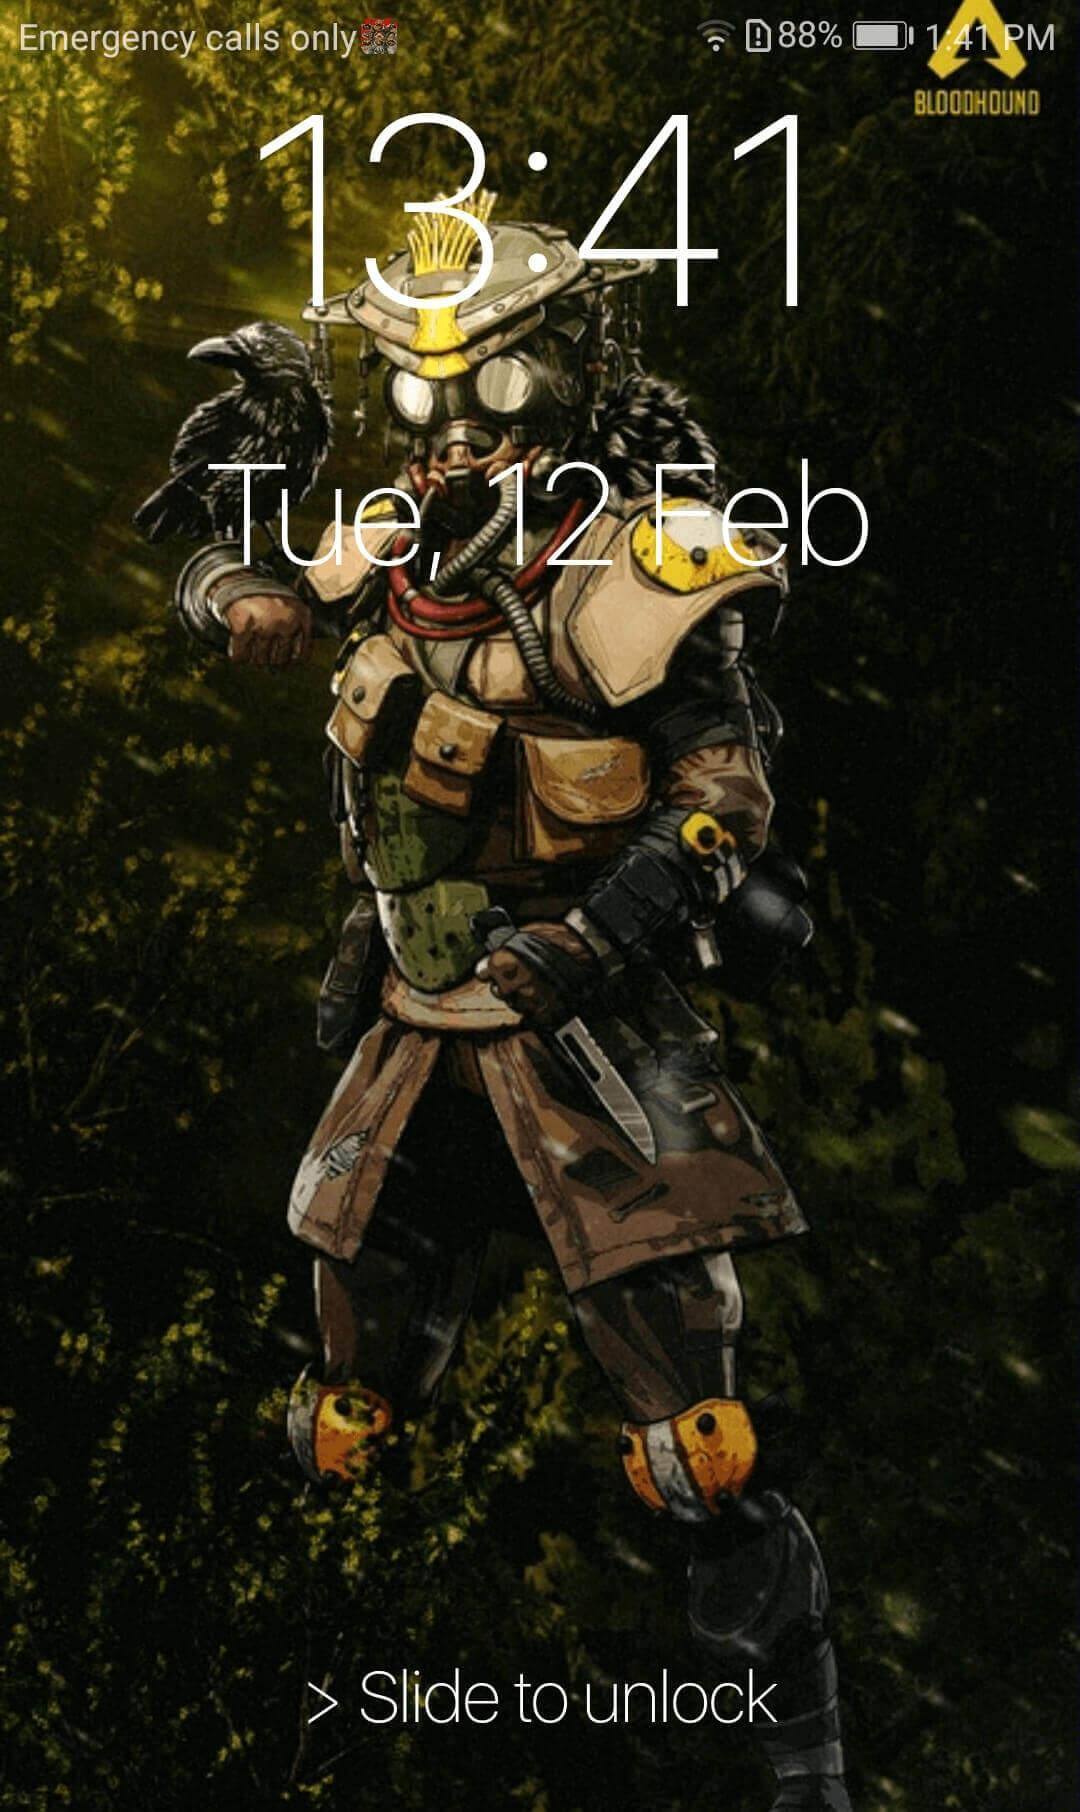 Apex Lock Screen Legends Battle Royal Wallpapers For Android